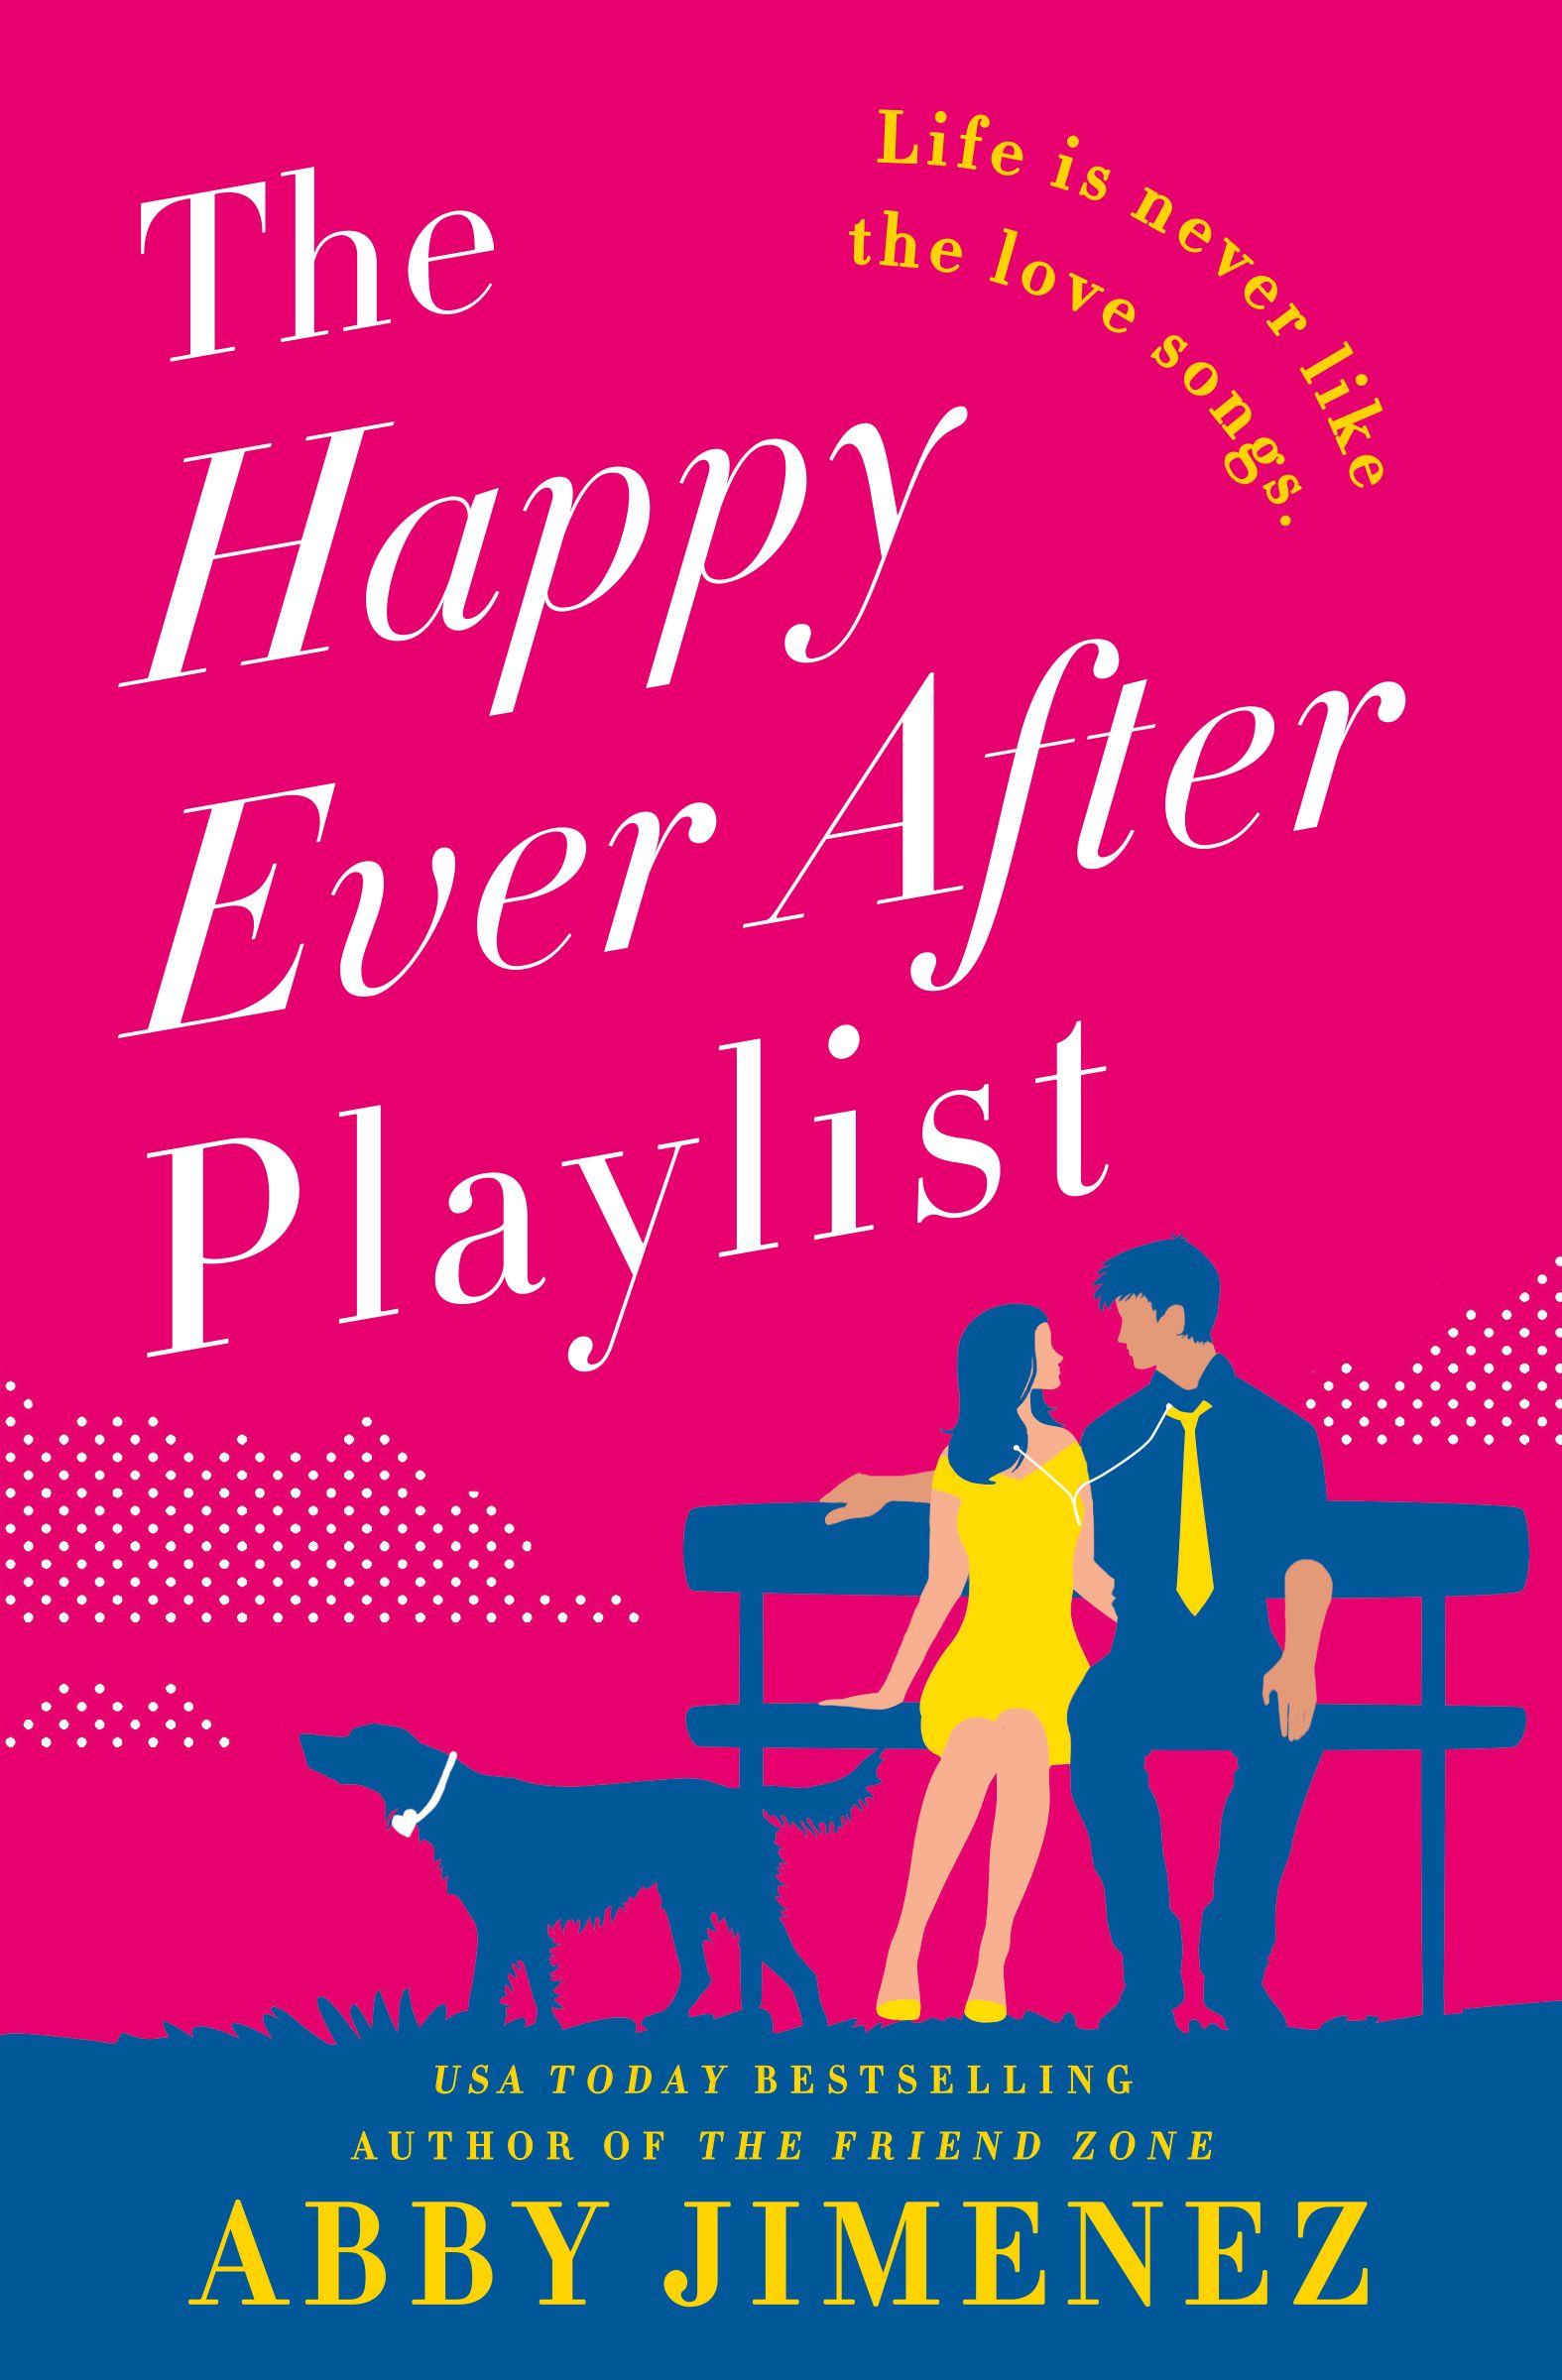 The Happy Ever After Playlist Pdf The Happy Ever After Playlist